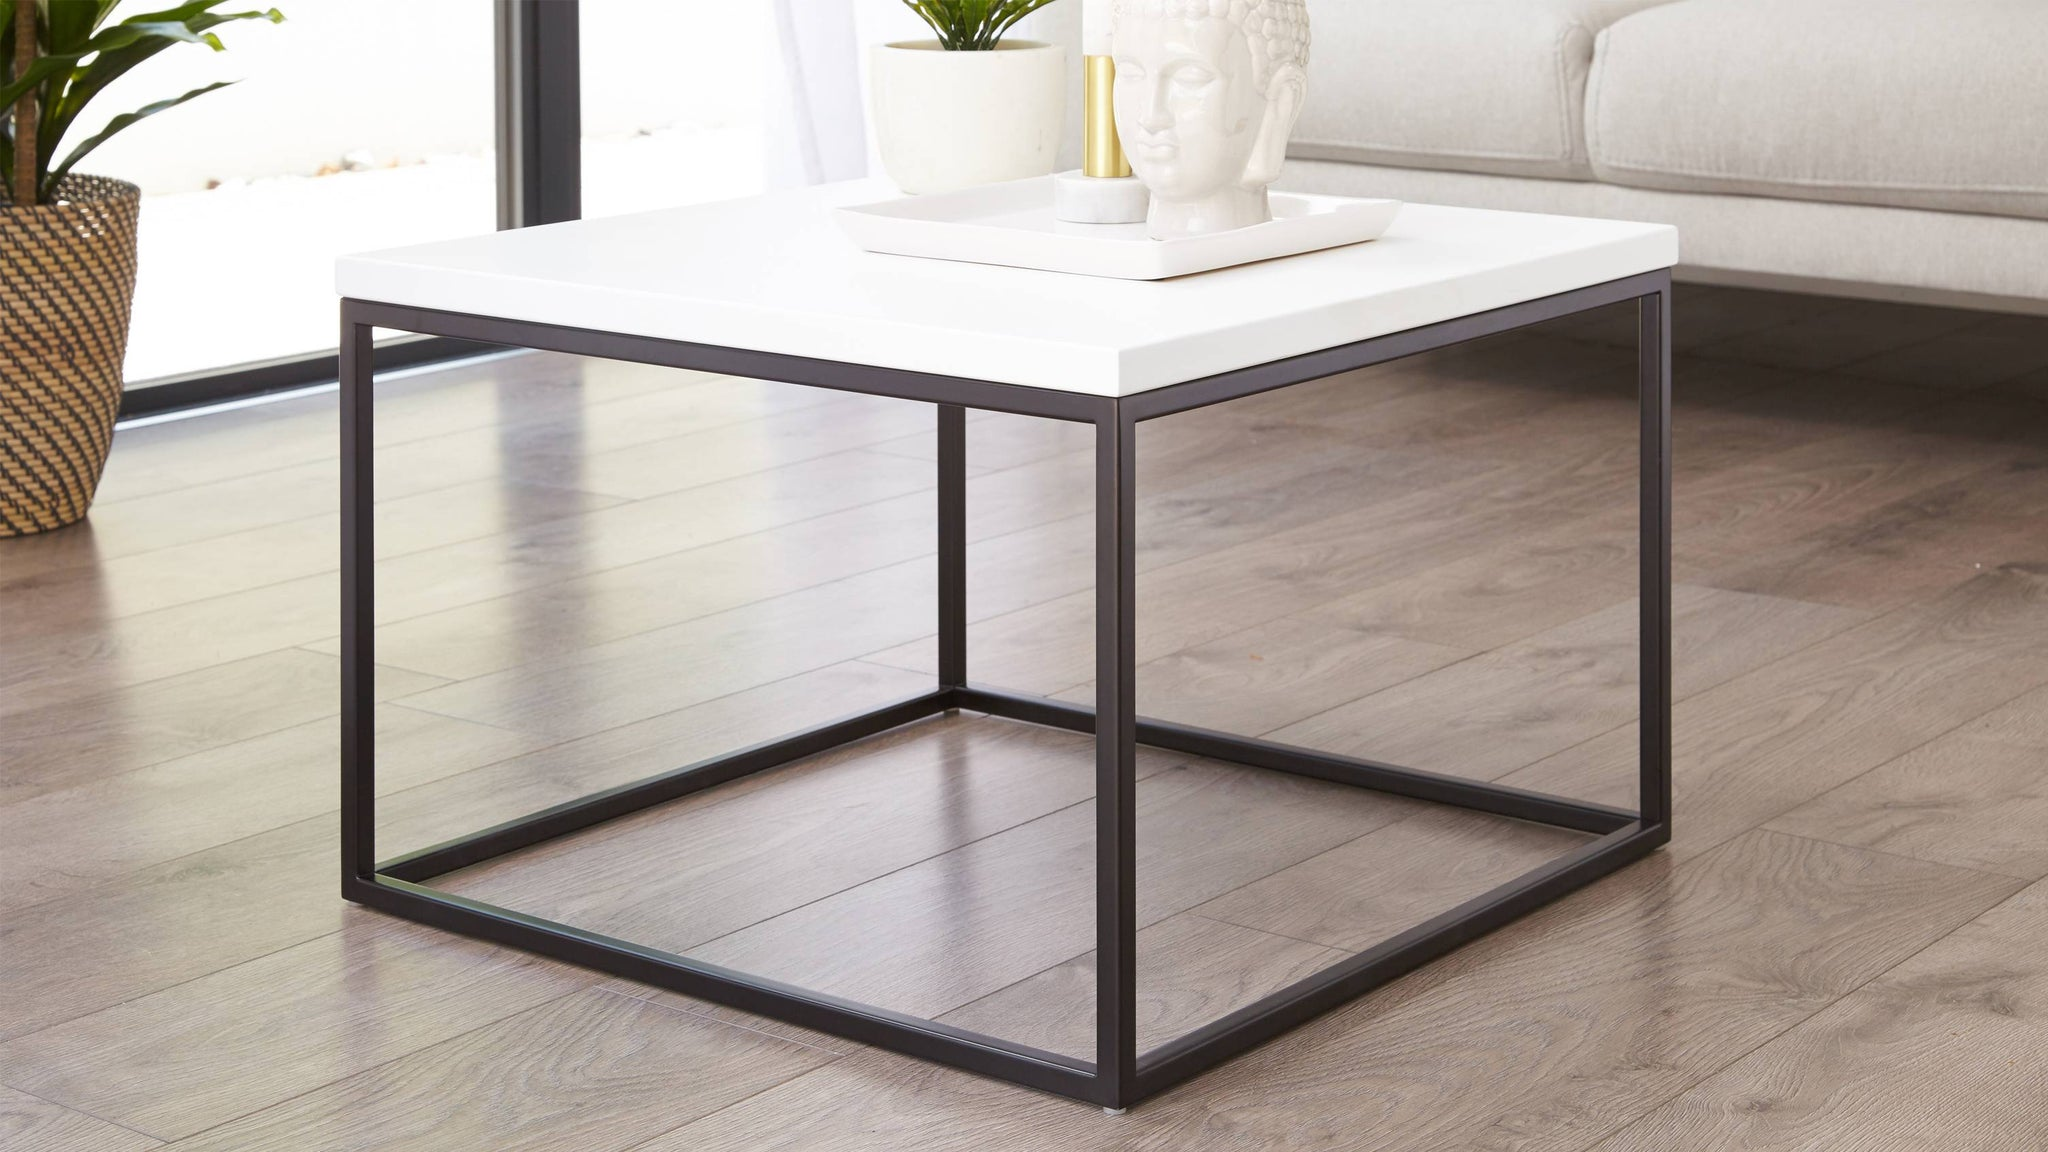 Matt white and black square coffee table